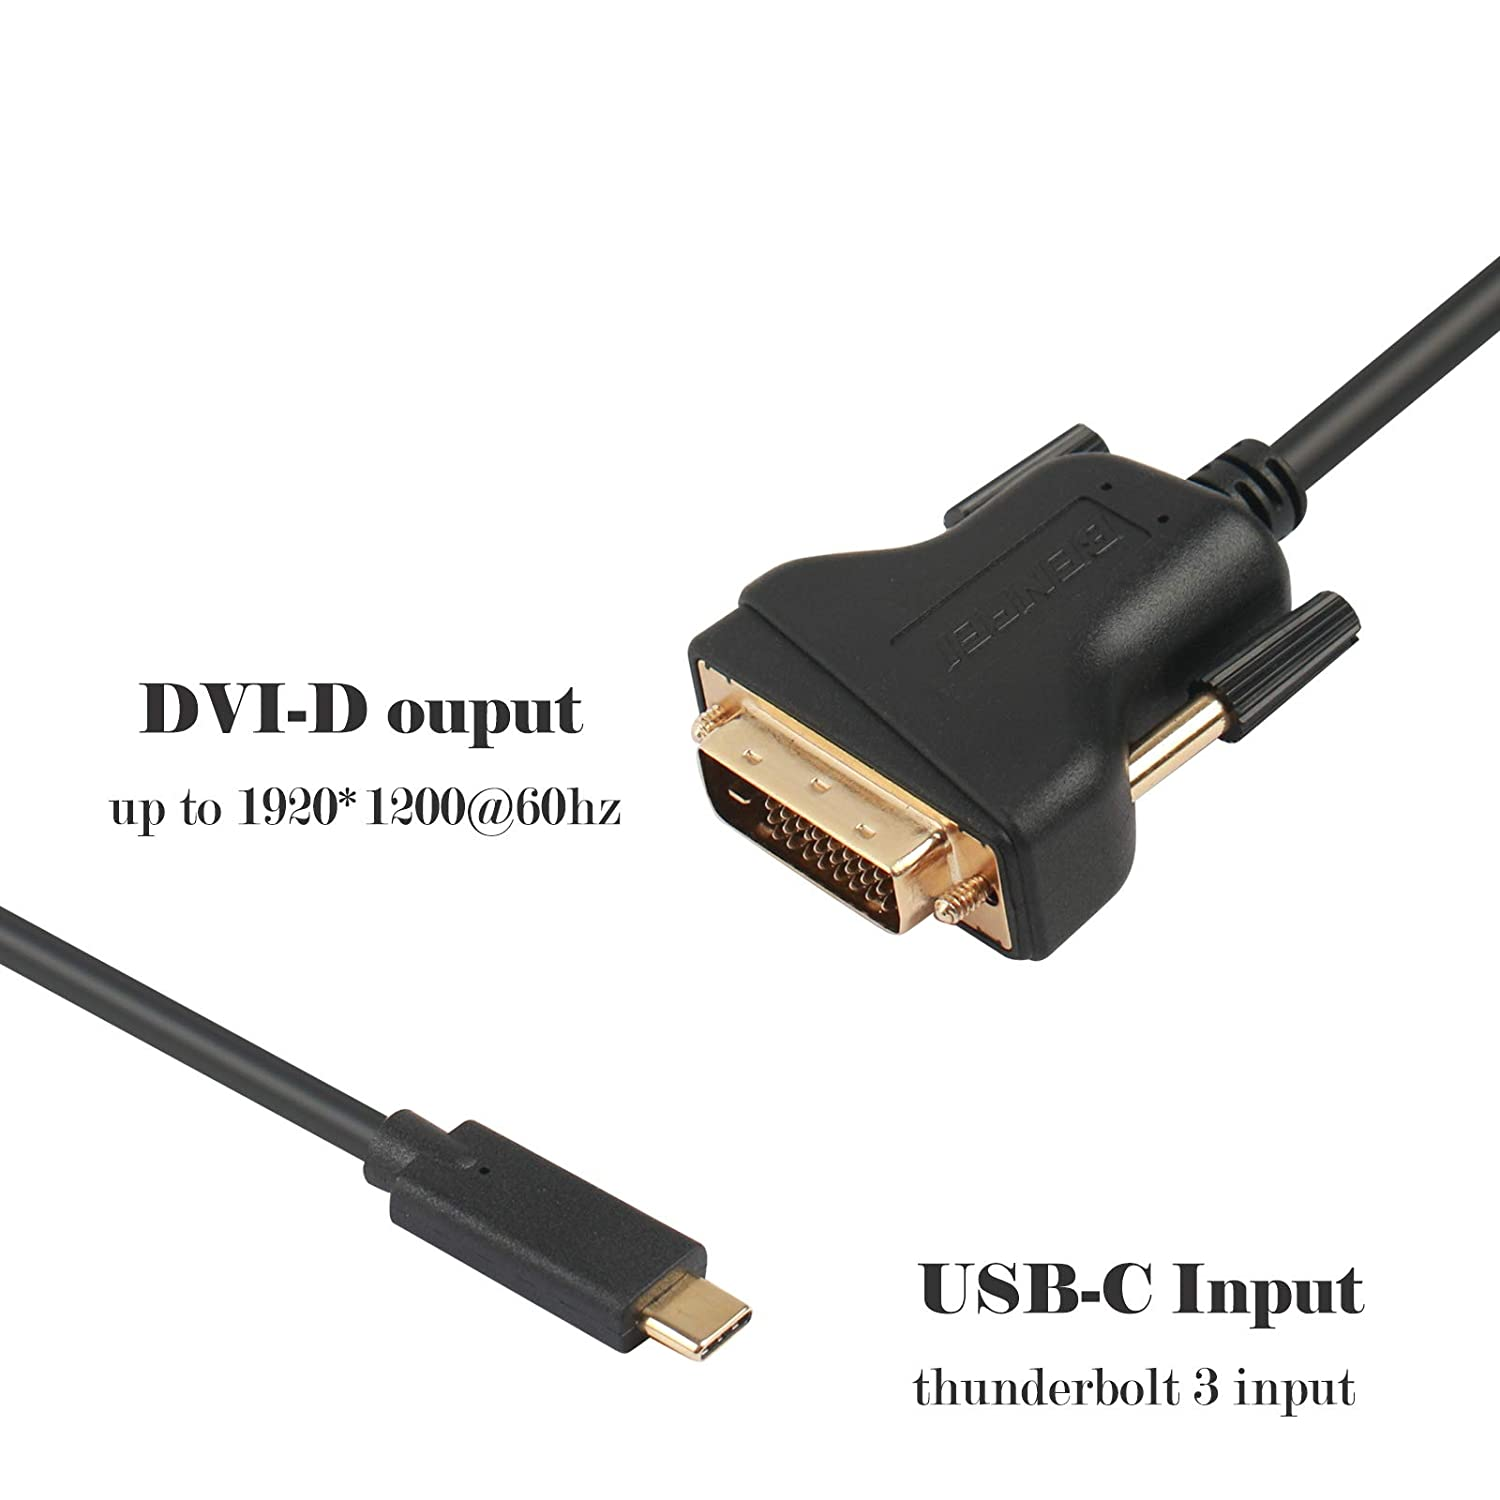 USB-C to DVI-D Cable Male to Male Adapter Compatible with New MacBook 2015,2016,2017,2018 BENFEI USB C to DVI 6 Feet Cable Thunderbolt 3